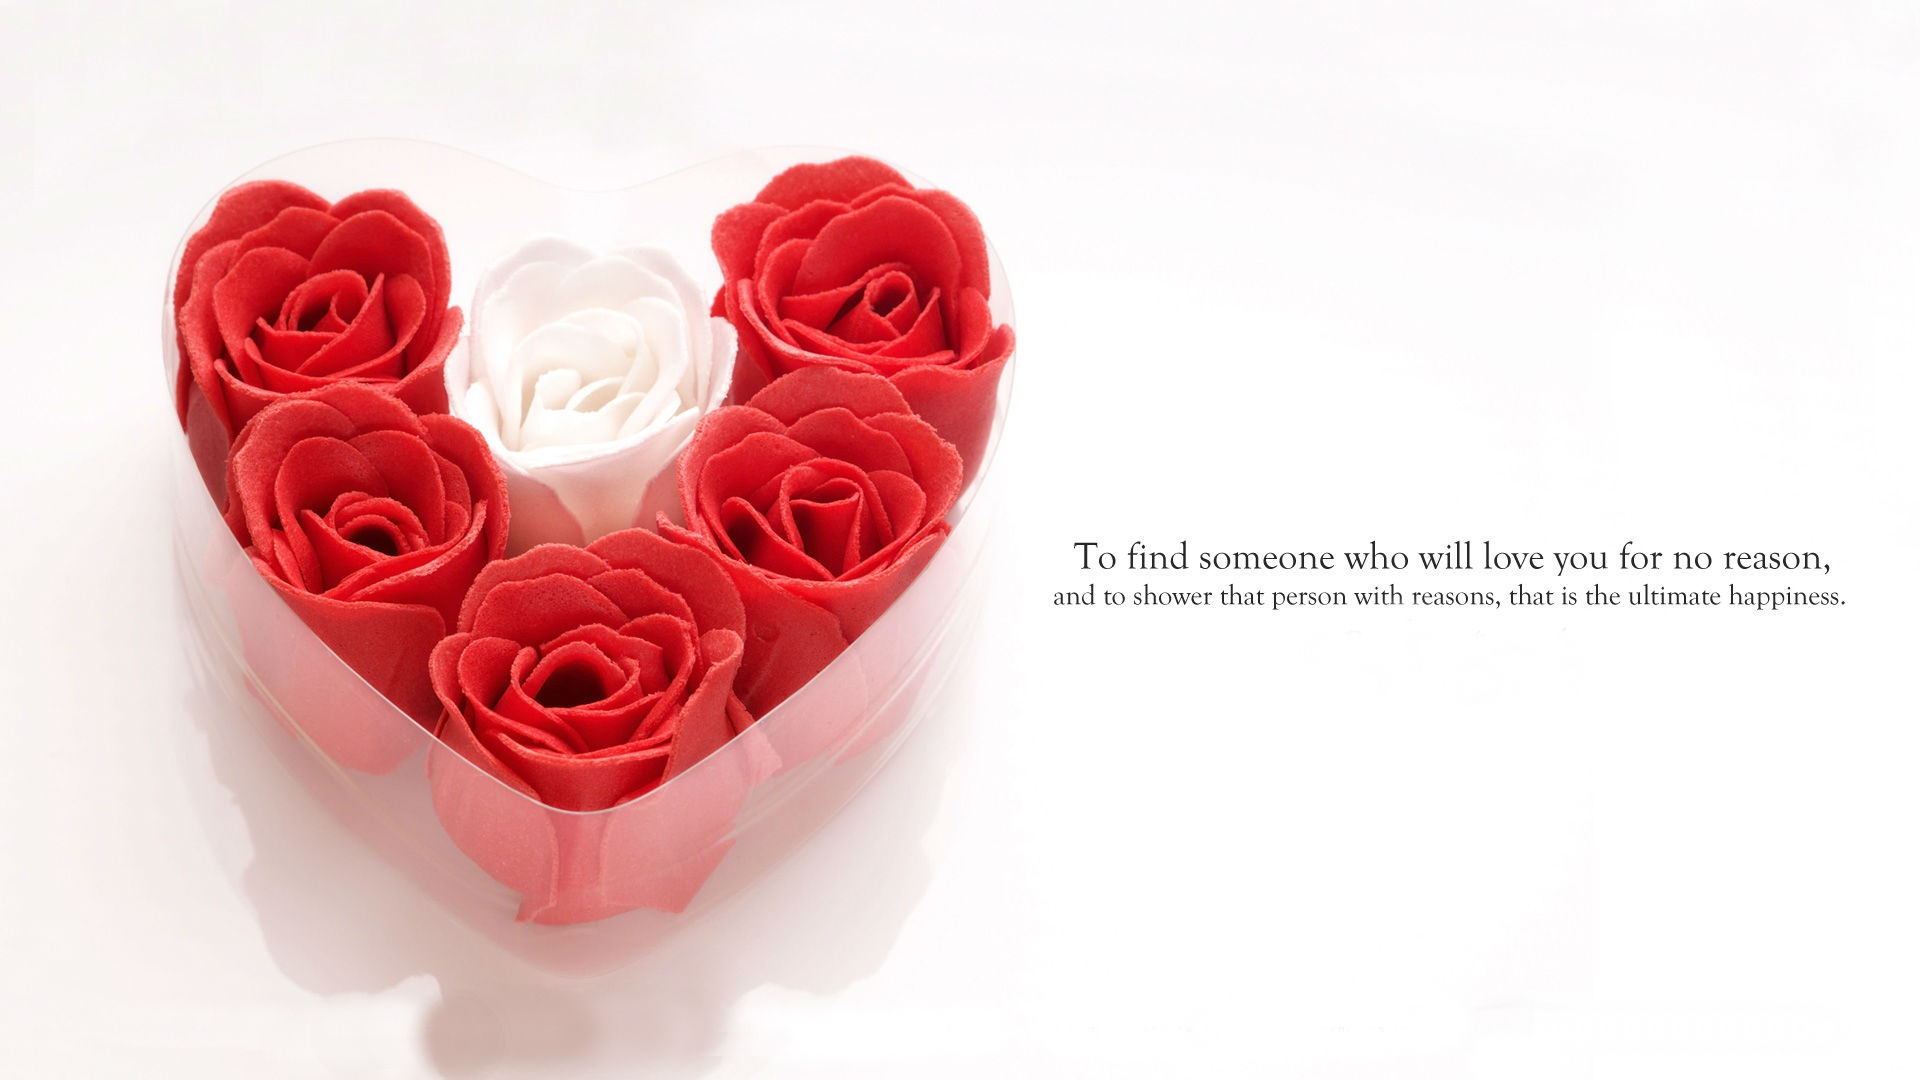 Happiness Love Flowers | 1920 x 1080 | Download | Close